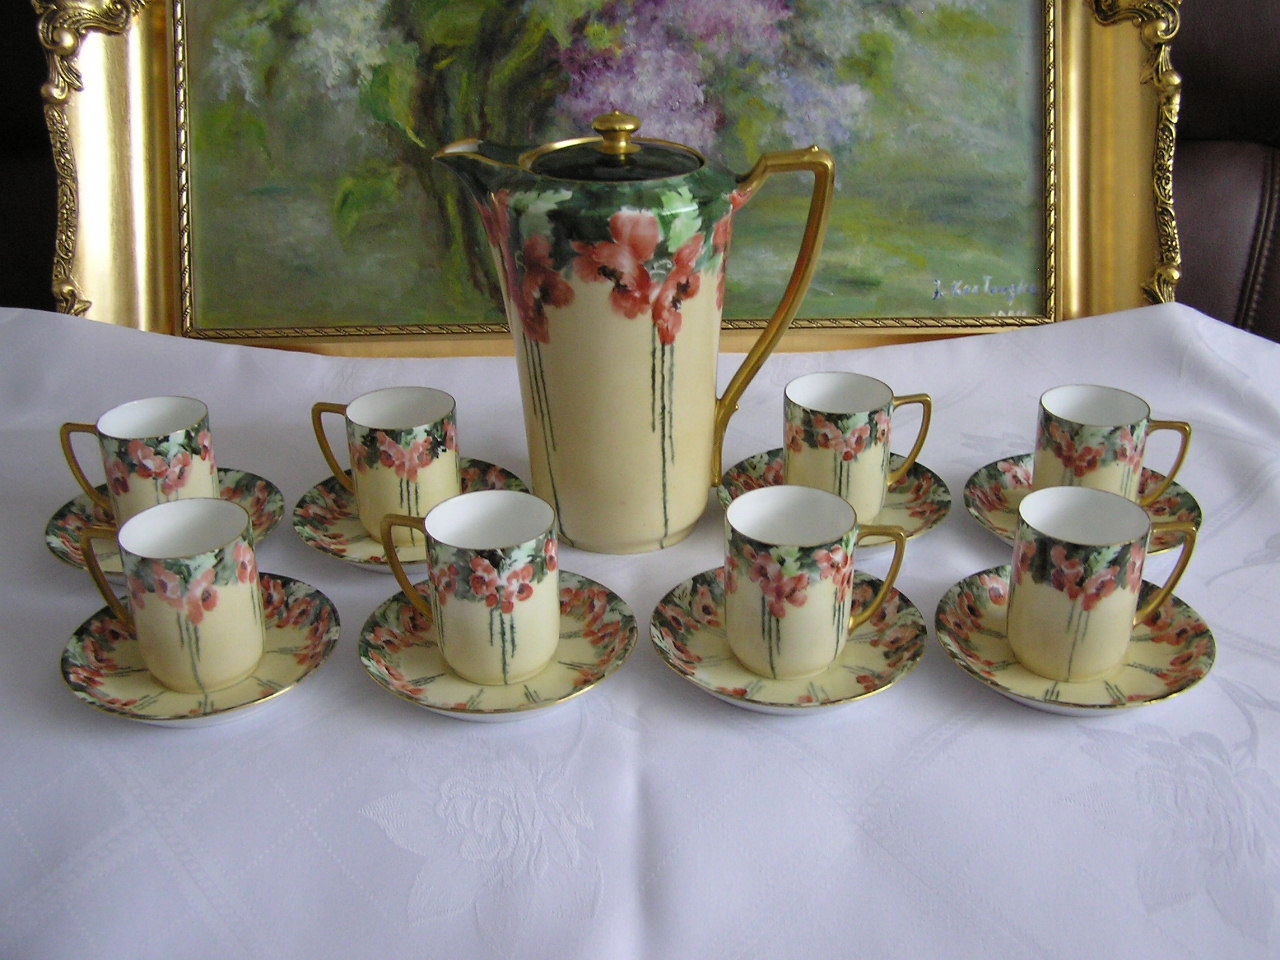 Item ROSENTHAL _ EMPIRE _ fine SERVICE _ More than 100 years